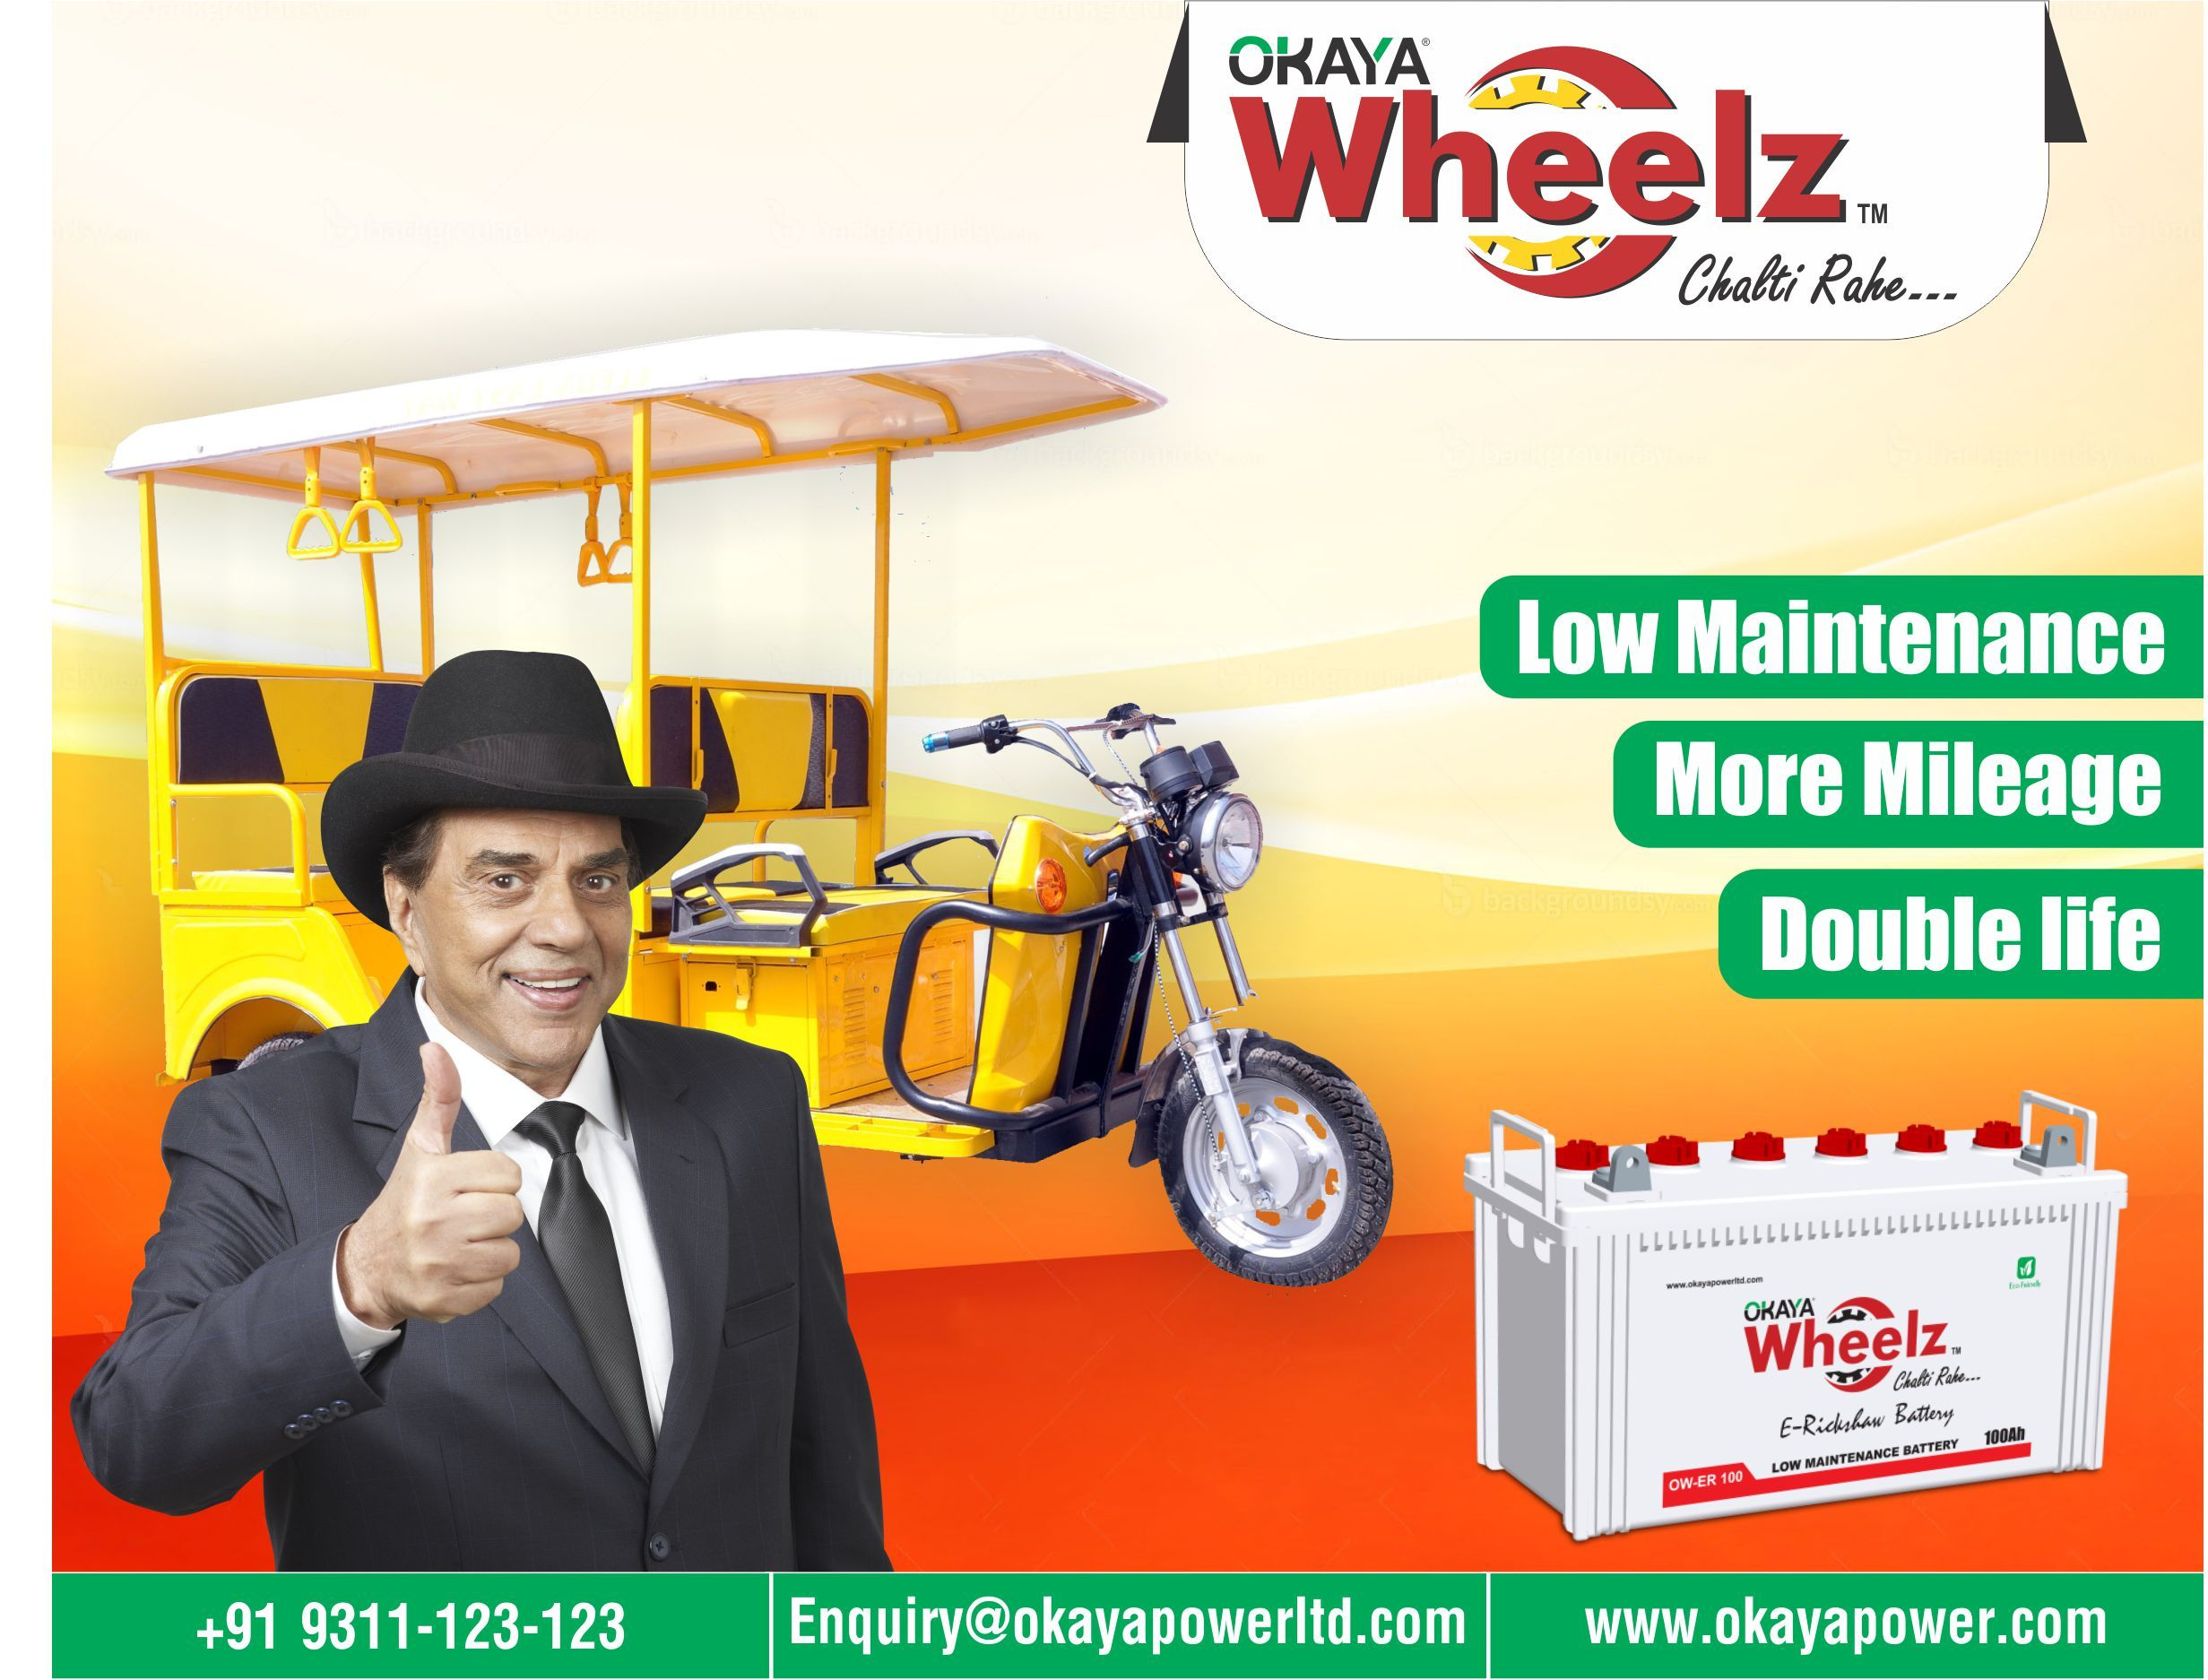 Buy Okaya Wheelz Battery for your E-Rikshaw which gives More ...